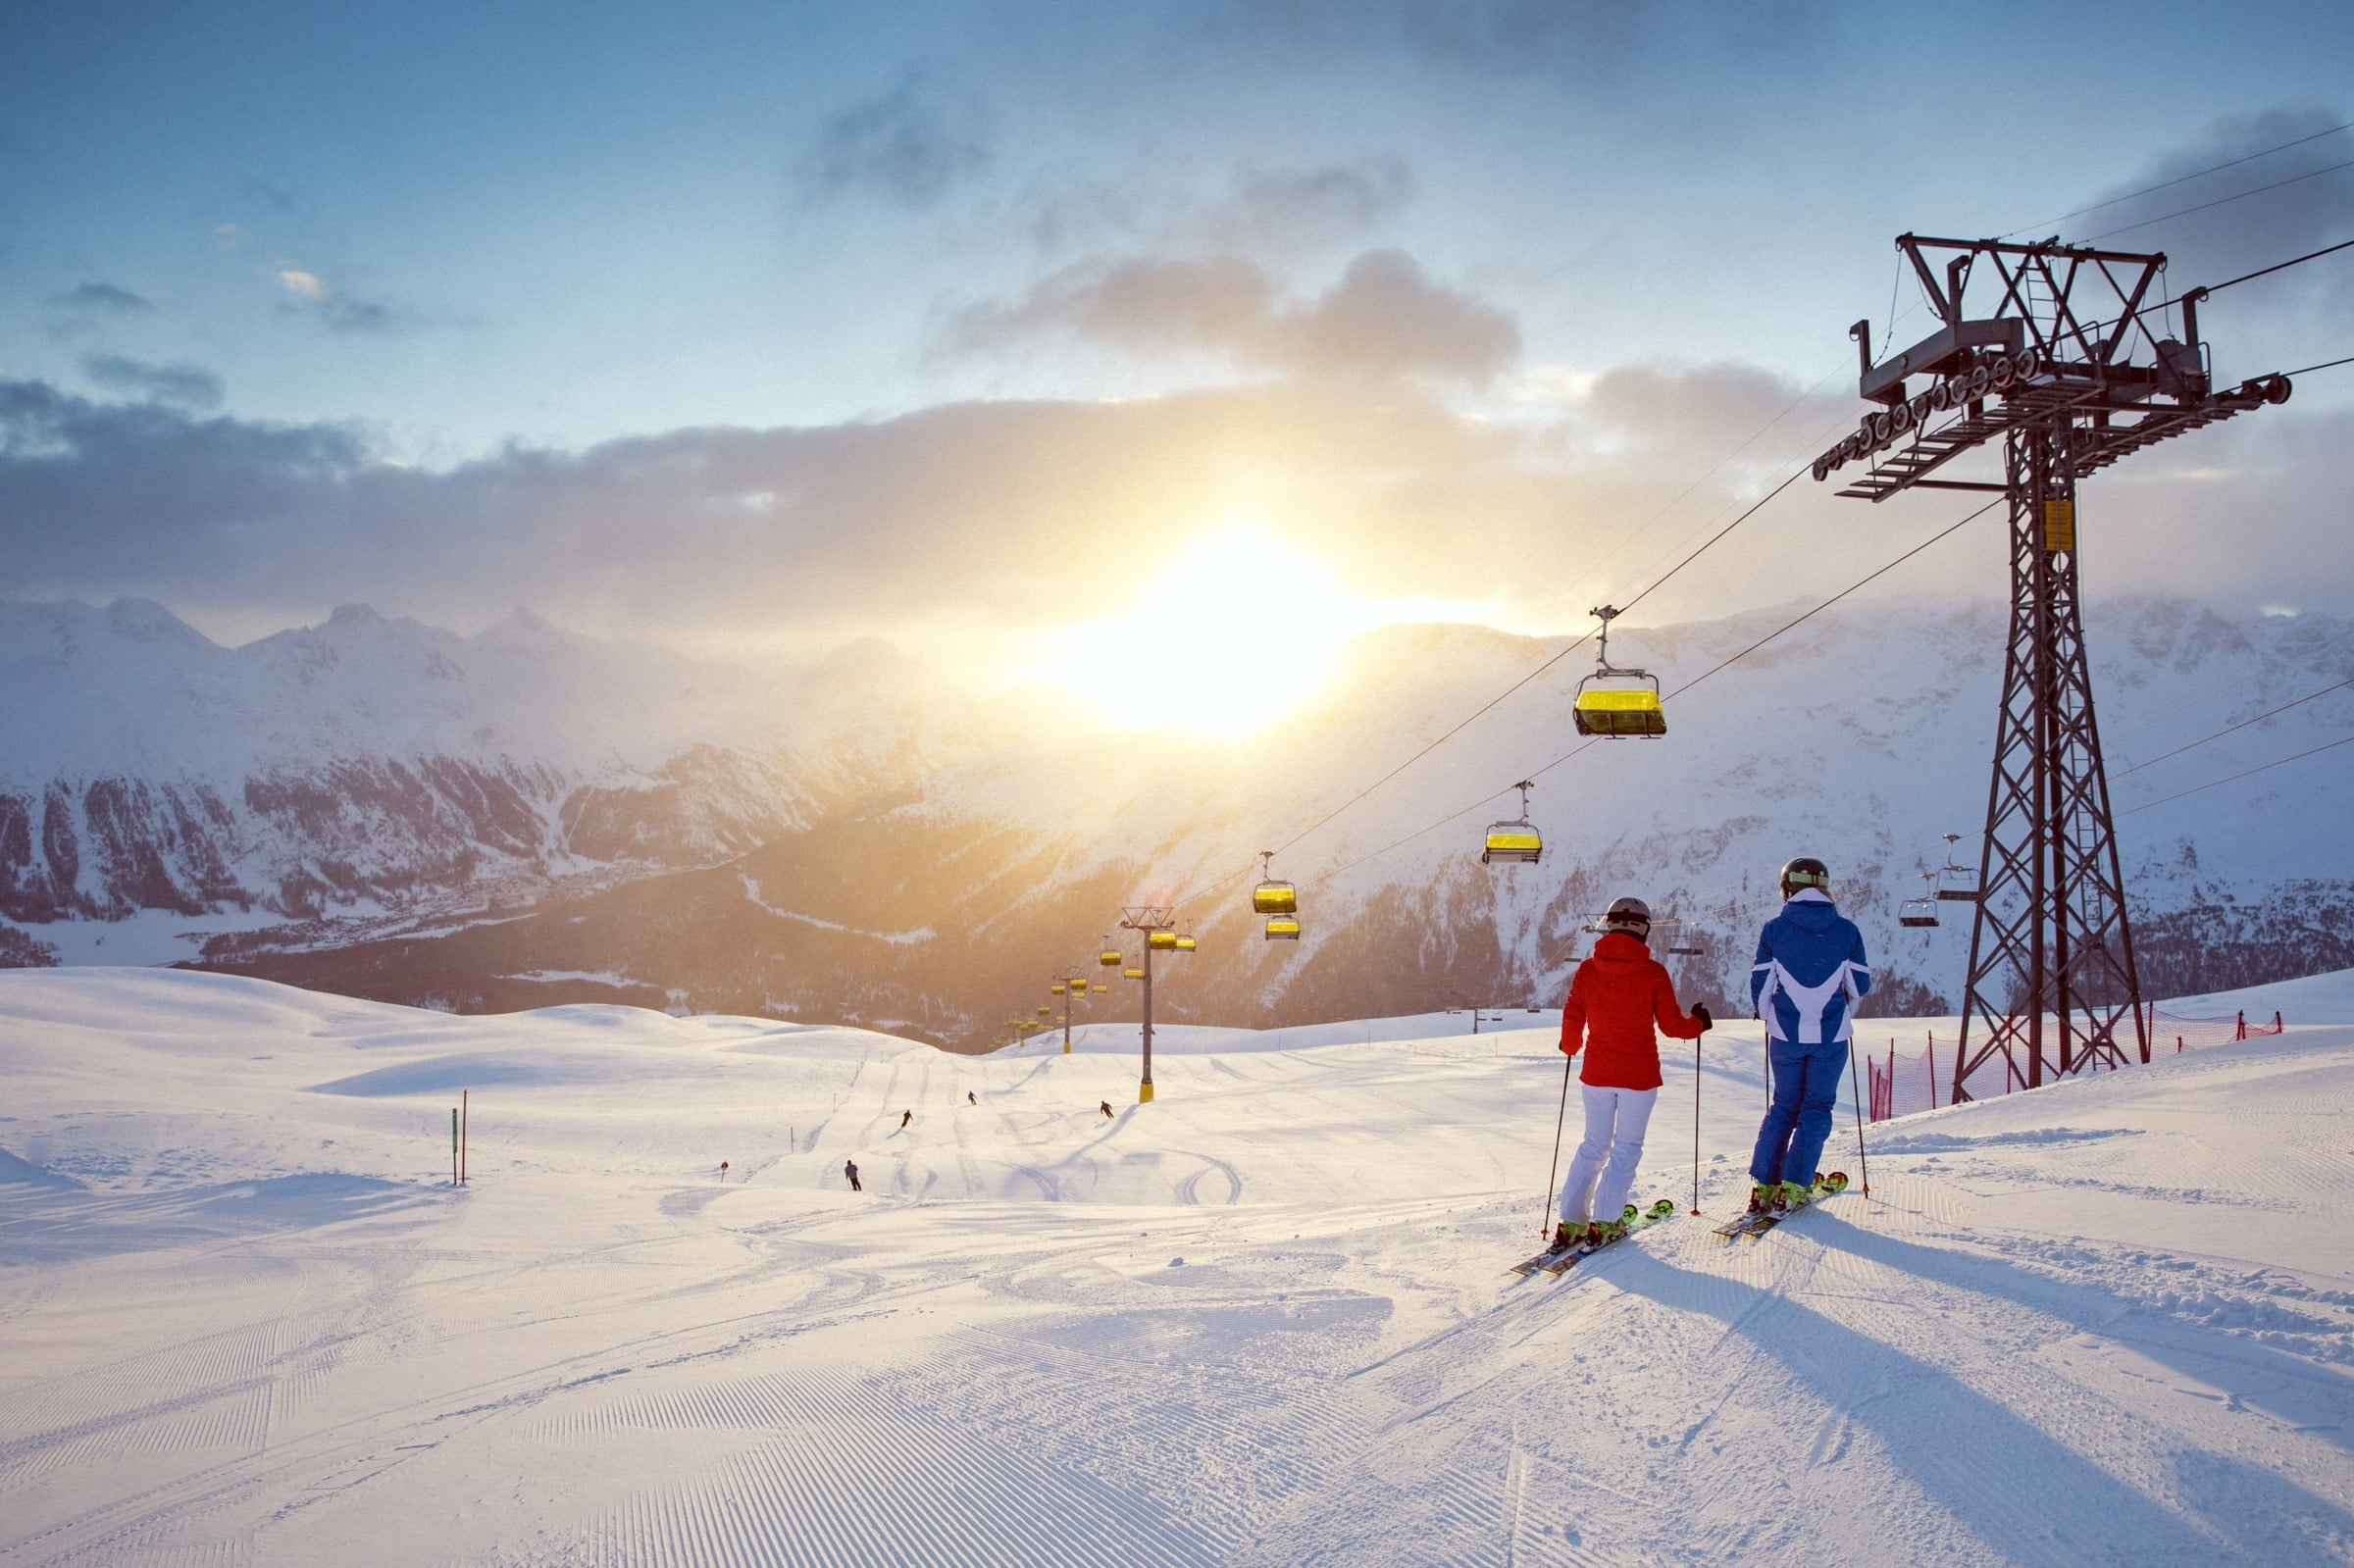 Heavenly runs in a winter sports paradise